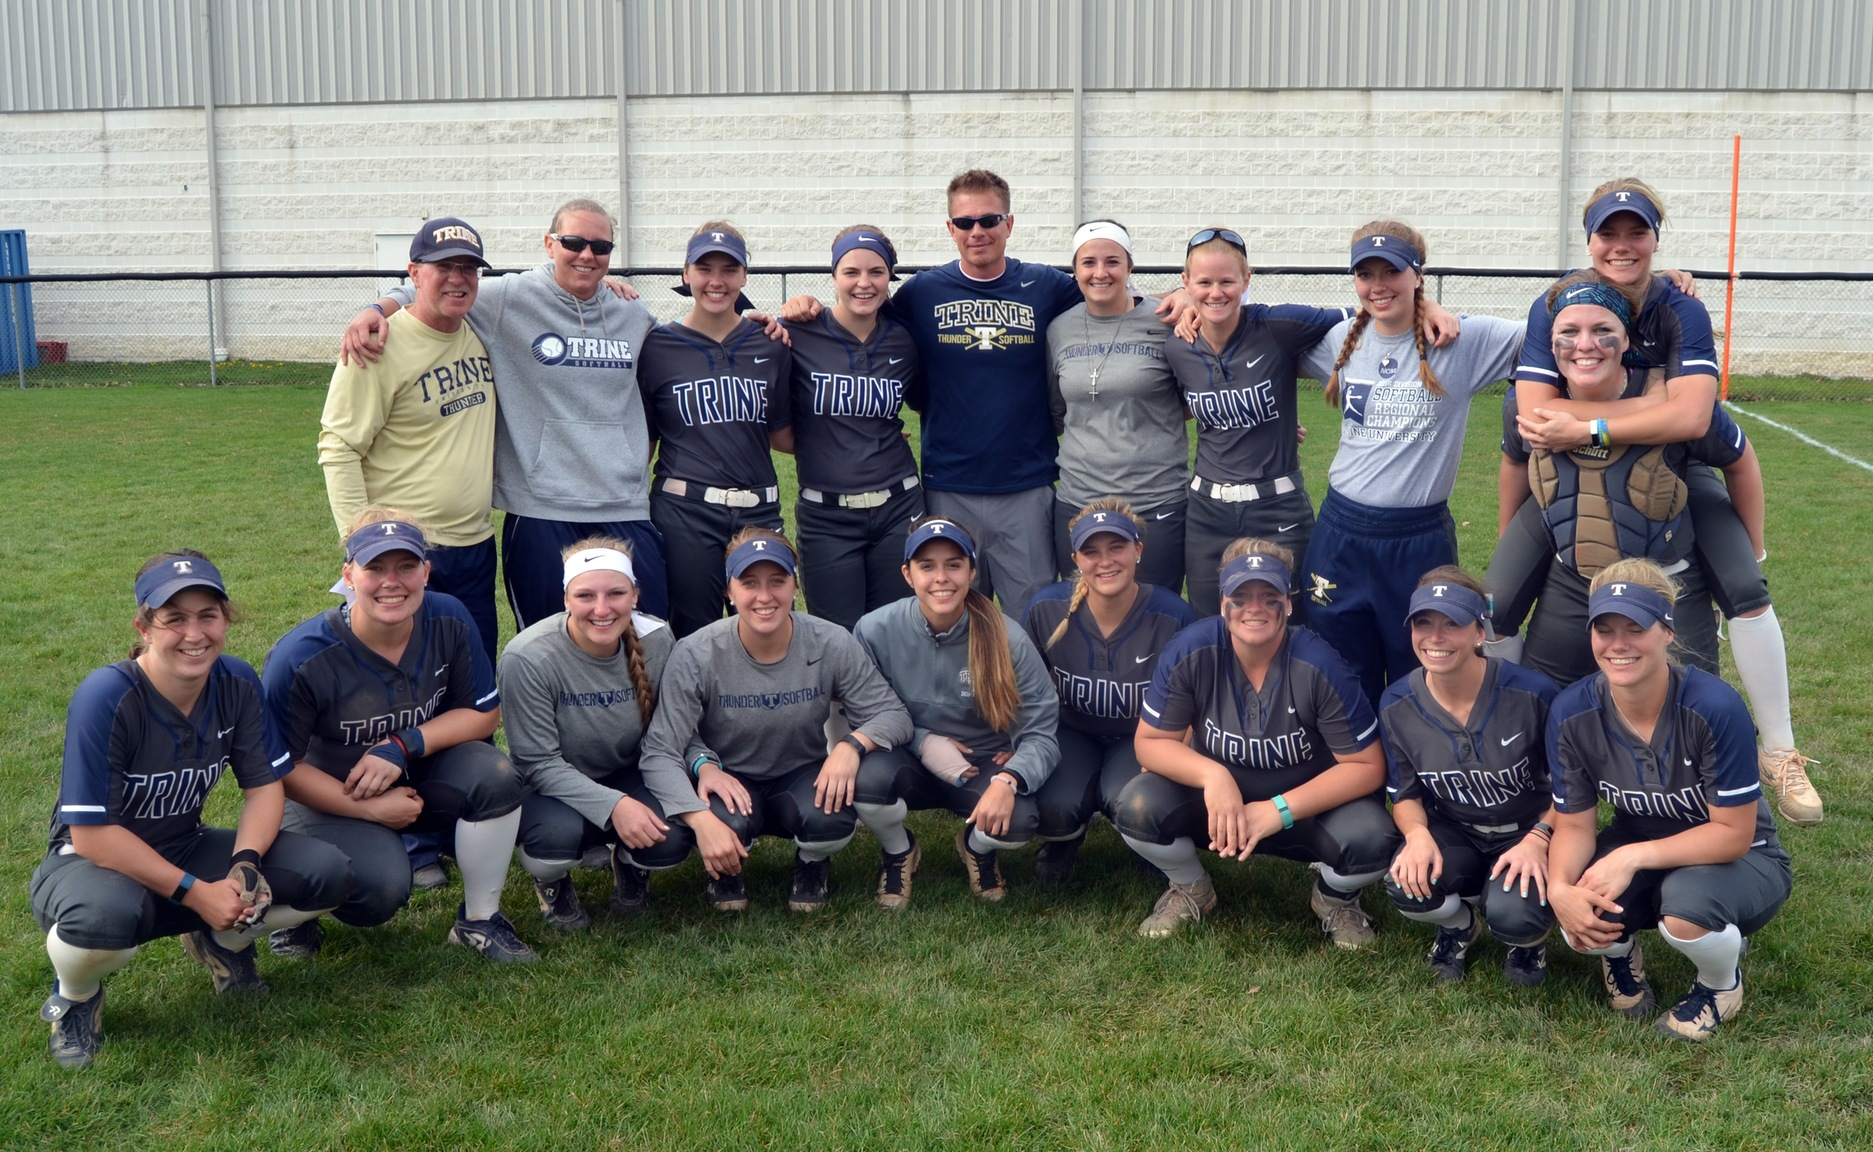 Softball Coaching Staff Named Best in Central Region